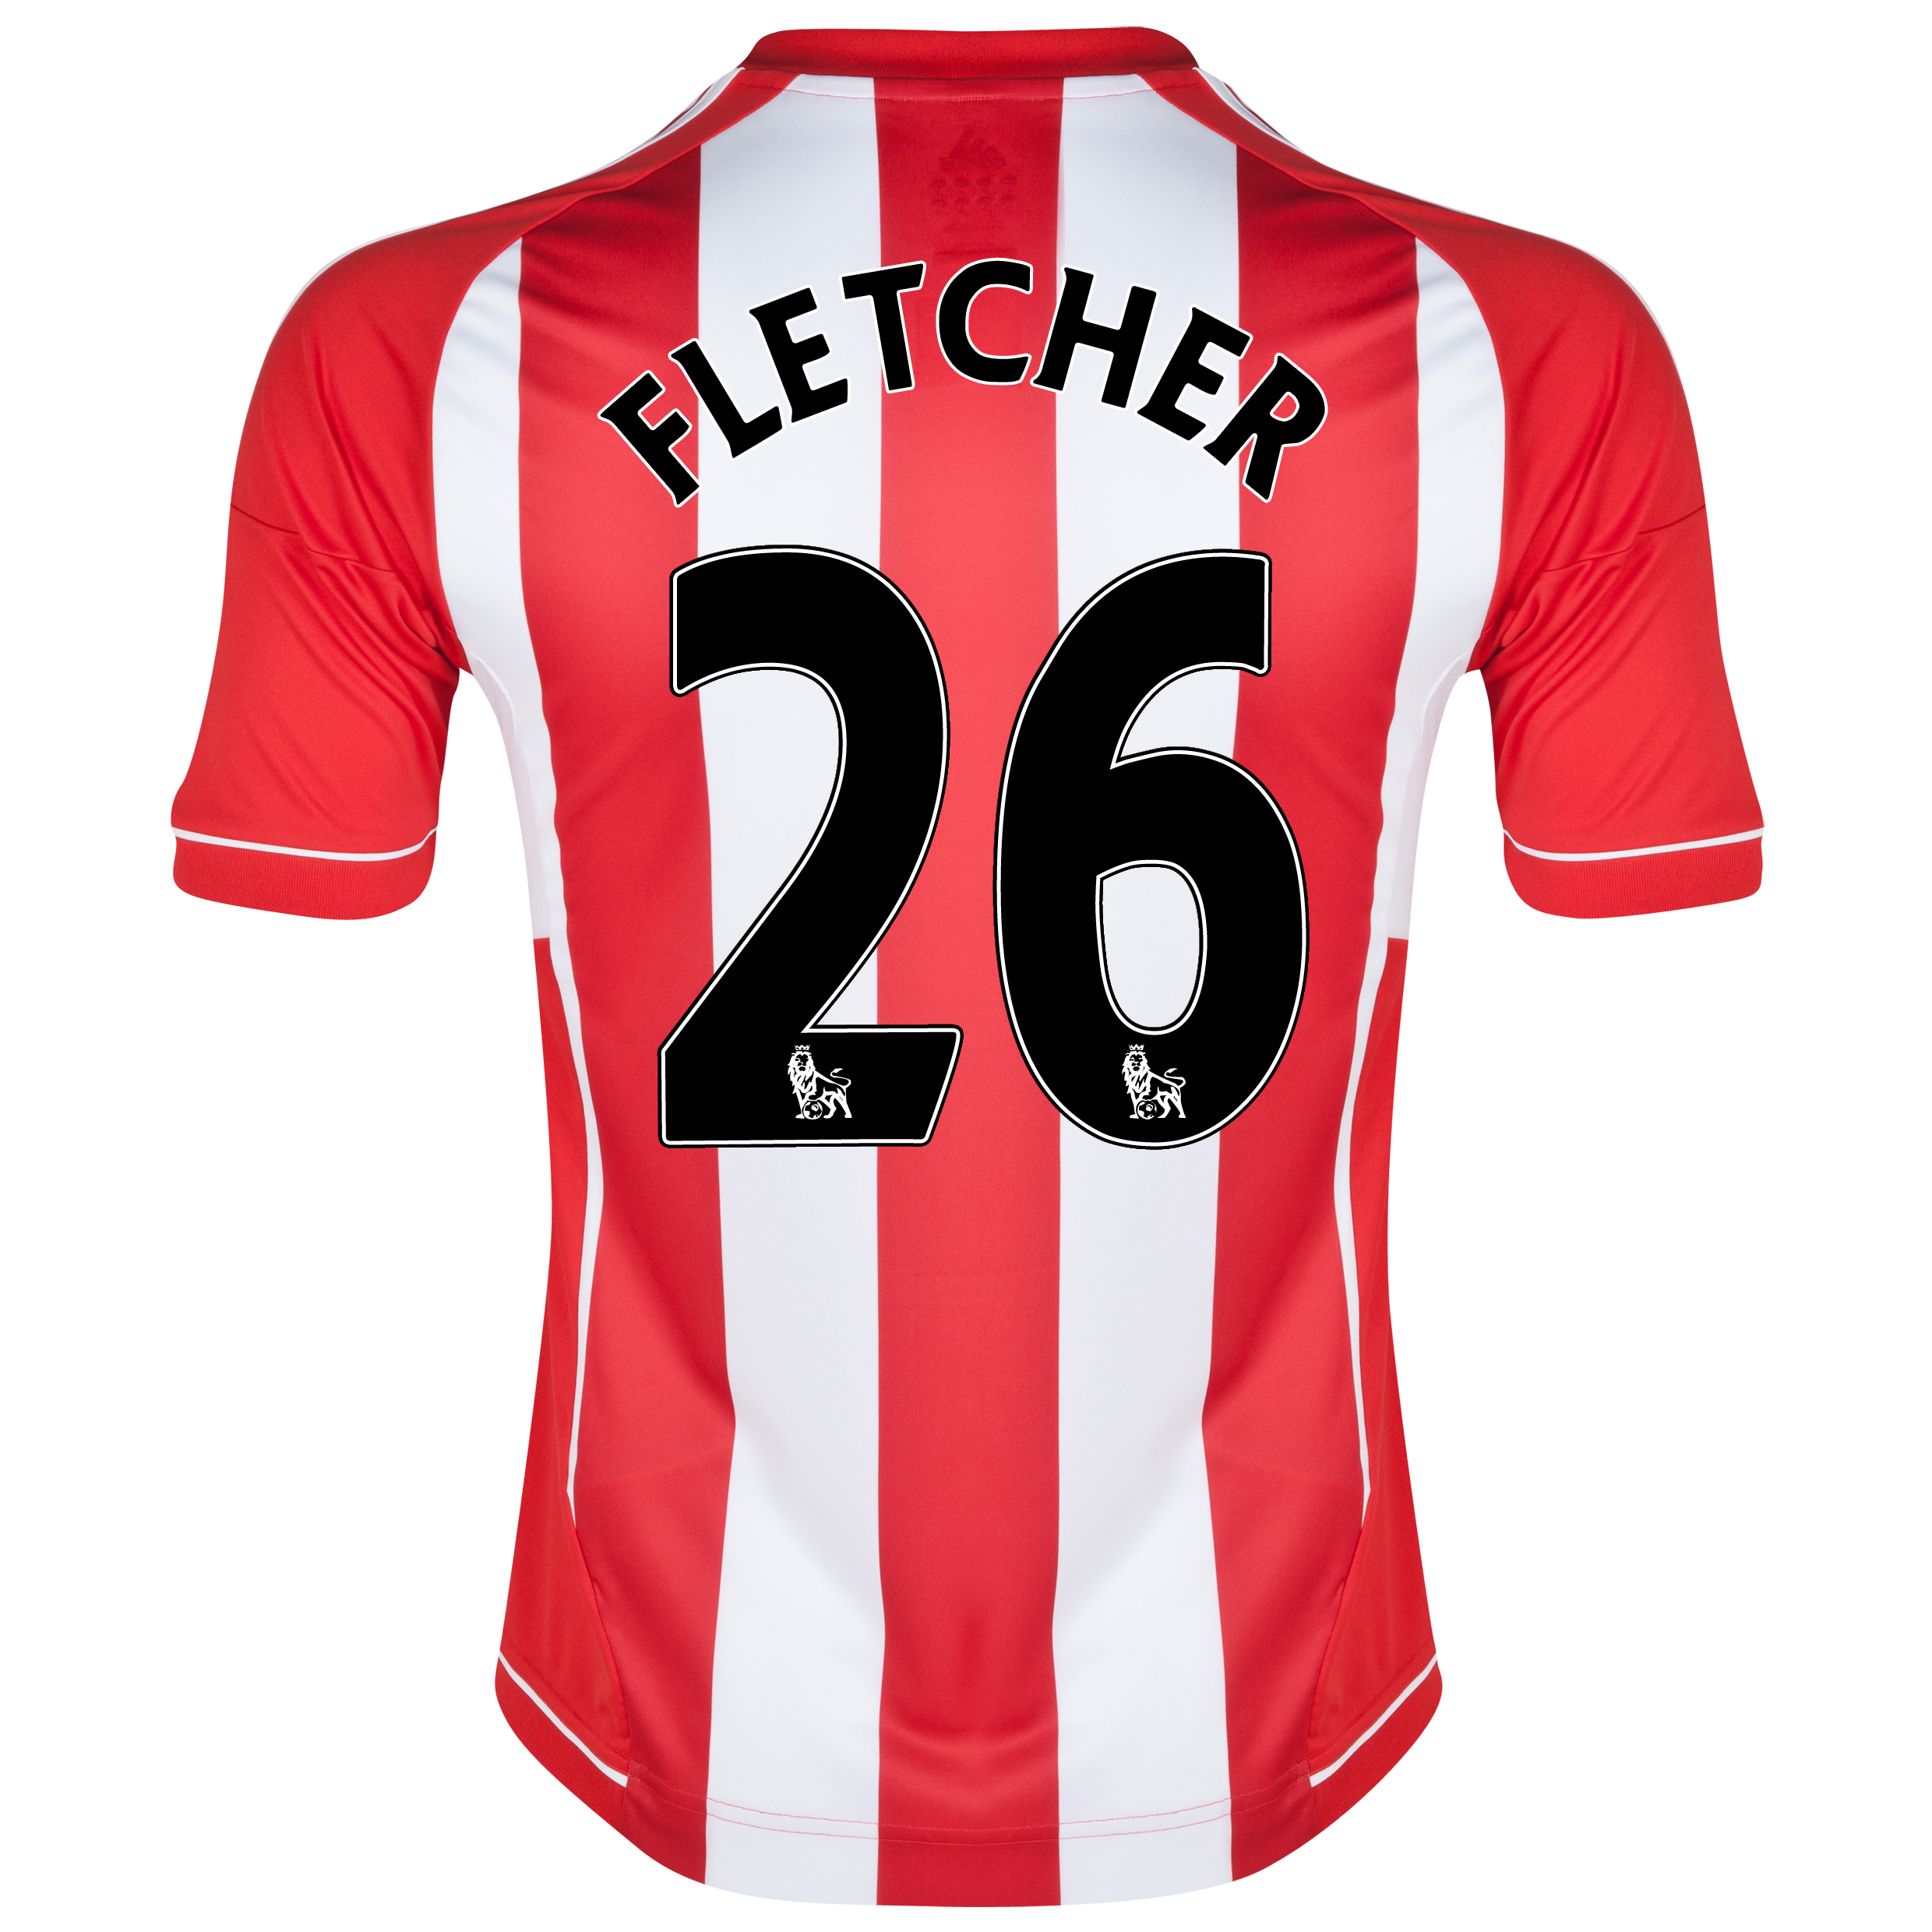 Sunderland Home Shirt 2012/13 - Junior with Fletcher 26 printing